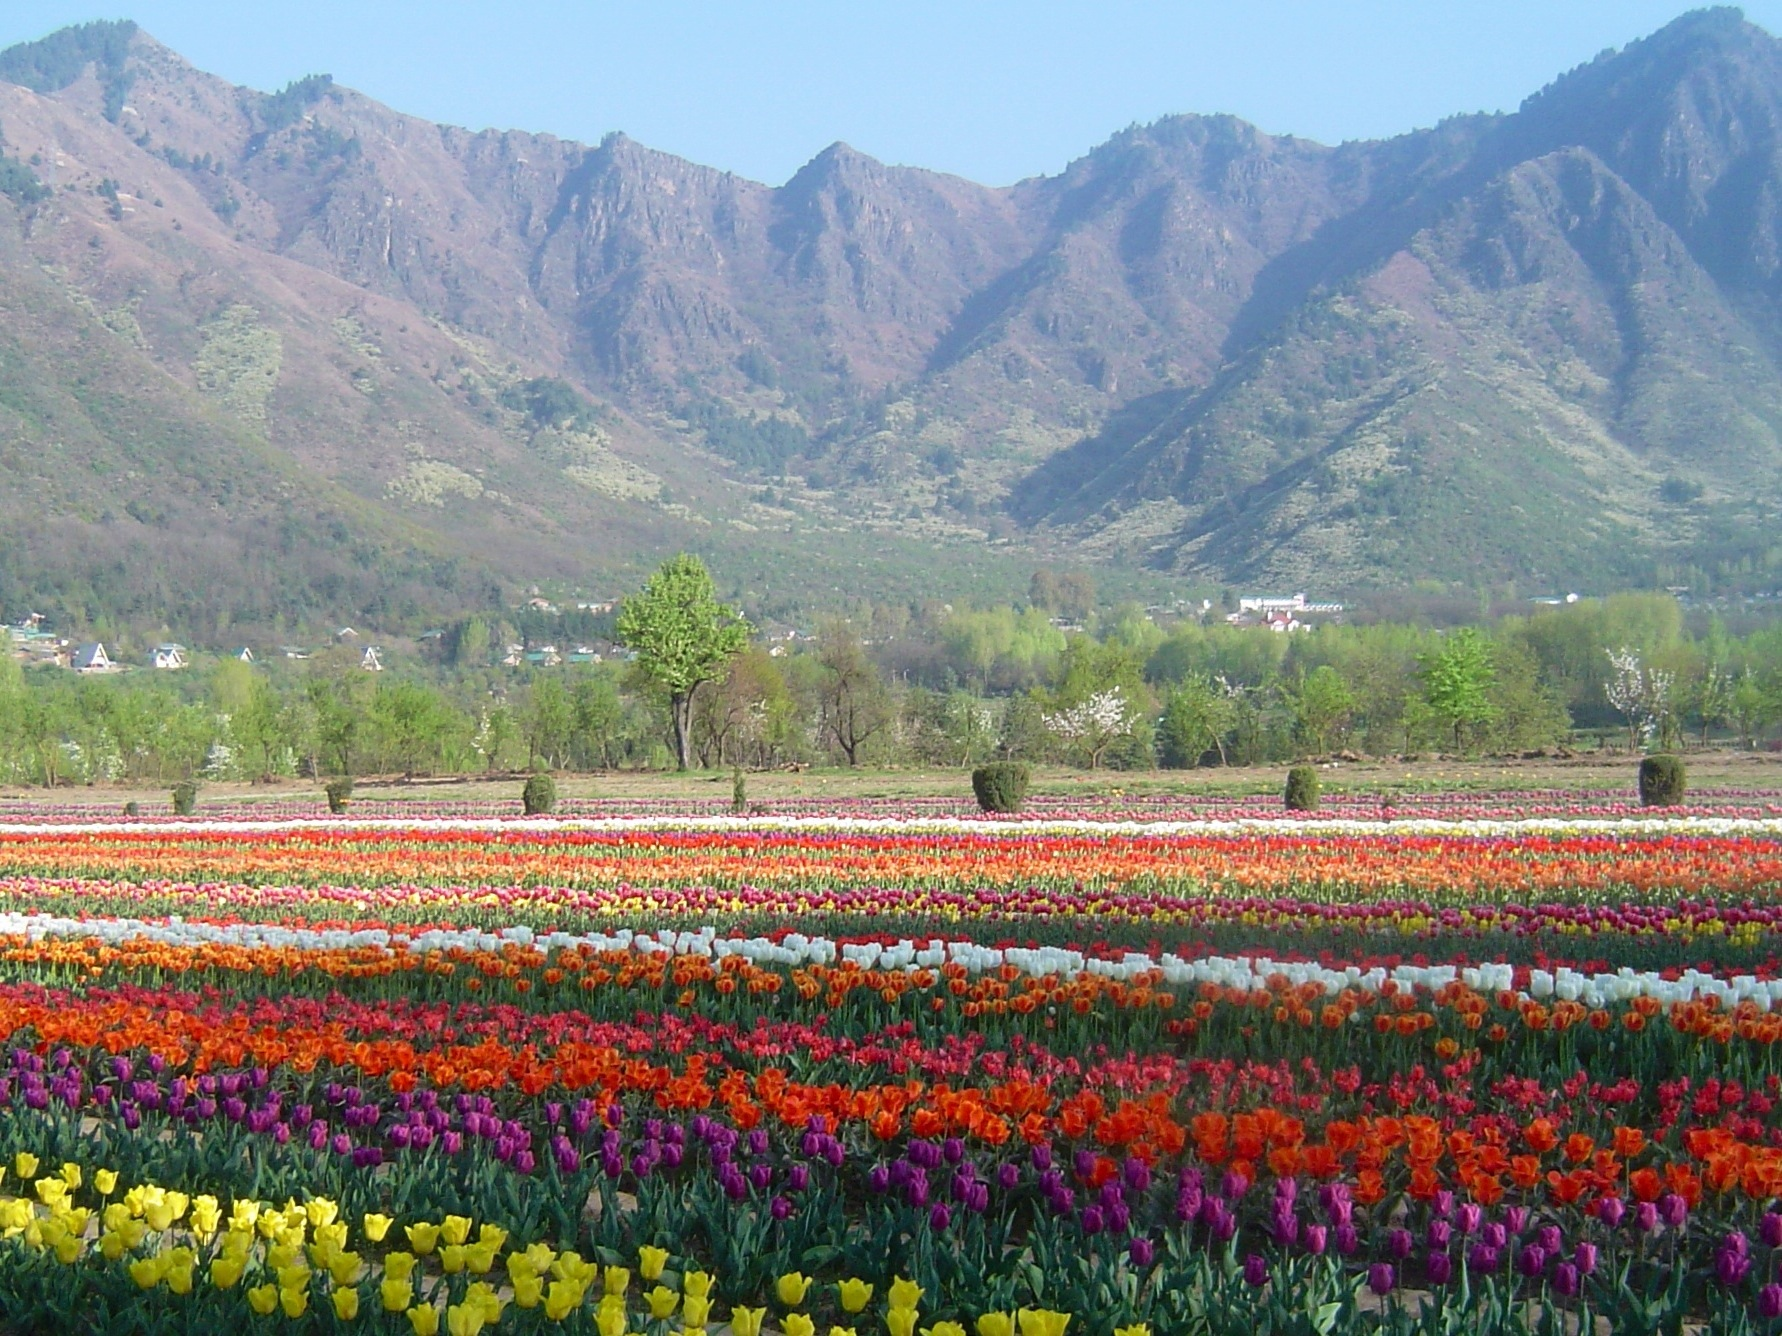 tulips from kashmir – the frustrated gardener